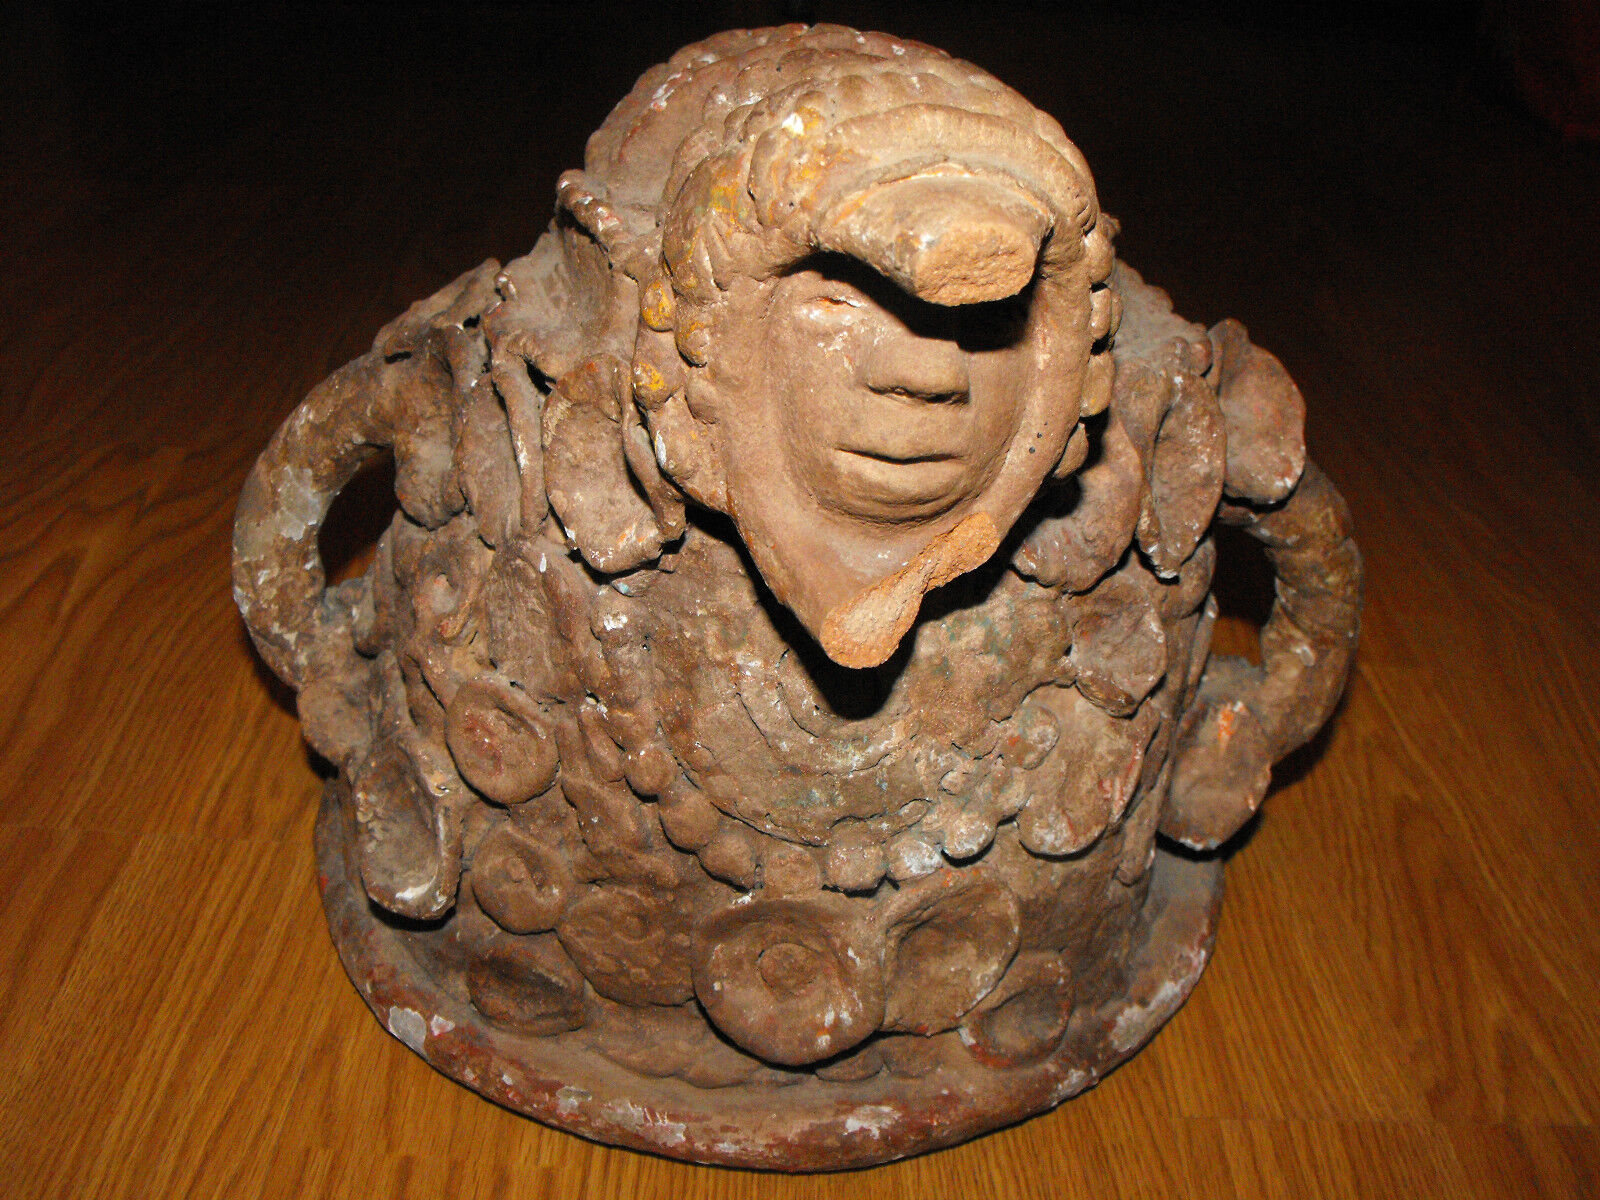 Pre-Columbian Mayan Redware Incensario Cover/Pottery/Sculpture Shaman Ceremonial